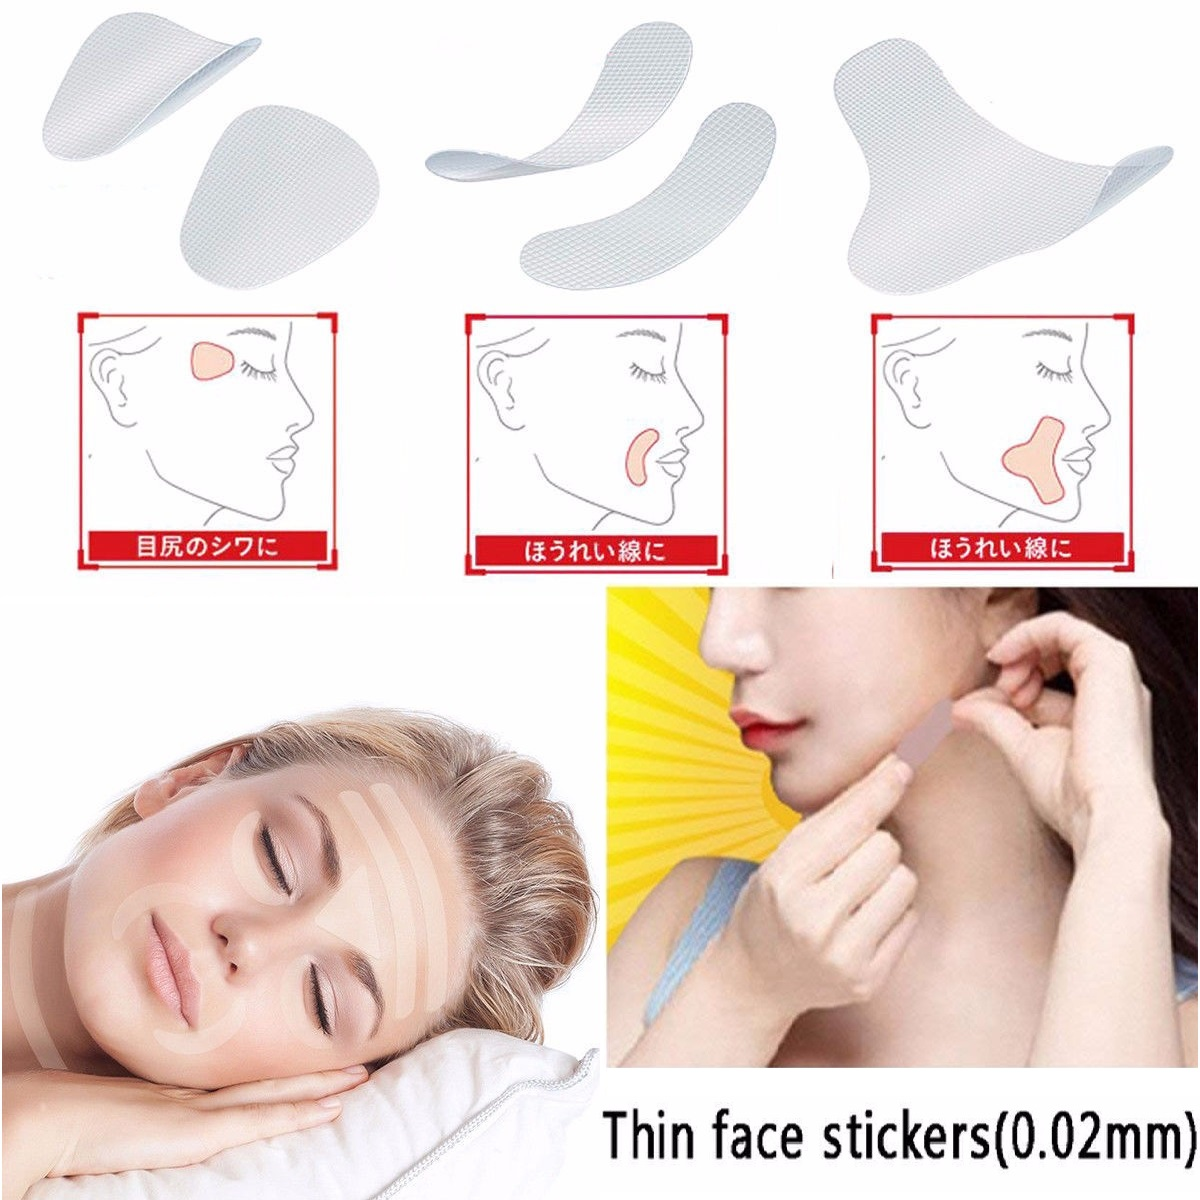 Drop Ship 40/27/24/12pcs V-Shape Lift Face Sticker Thin Face Artifact Invisible Sticker Medical Tape Makeup Face Lift Tool